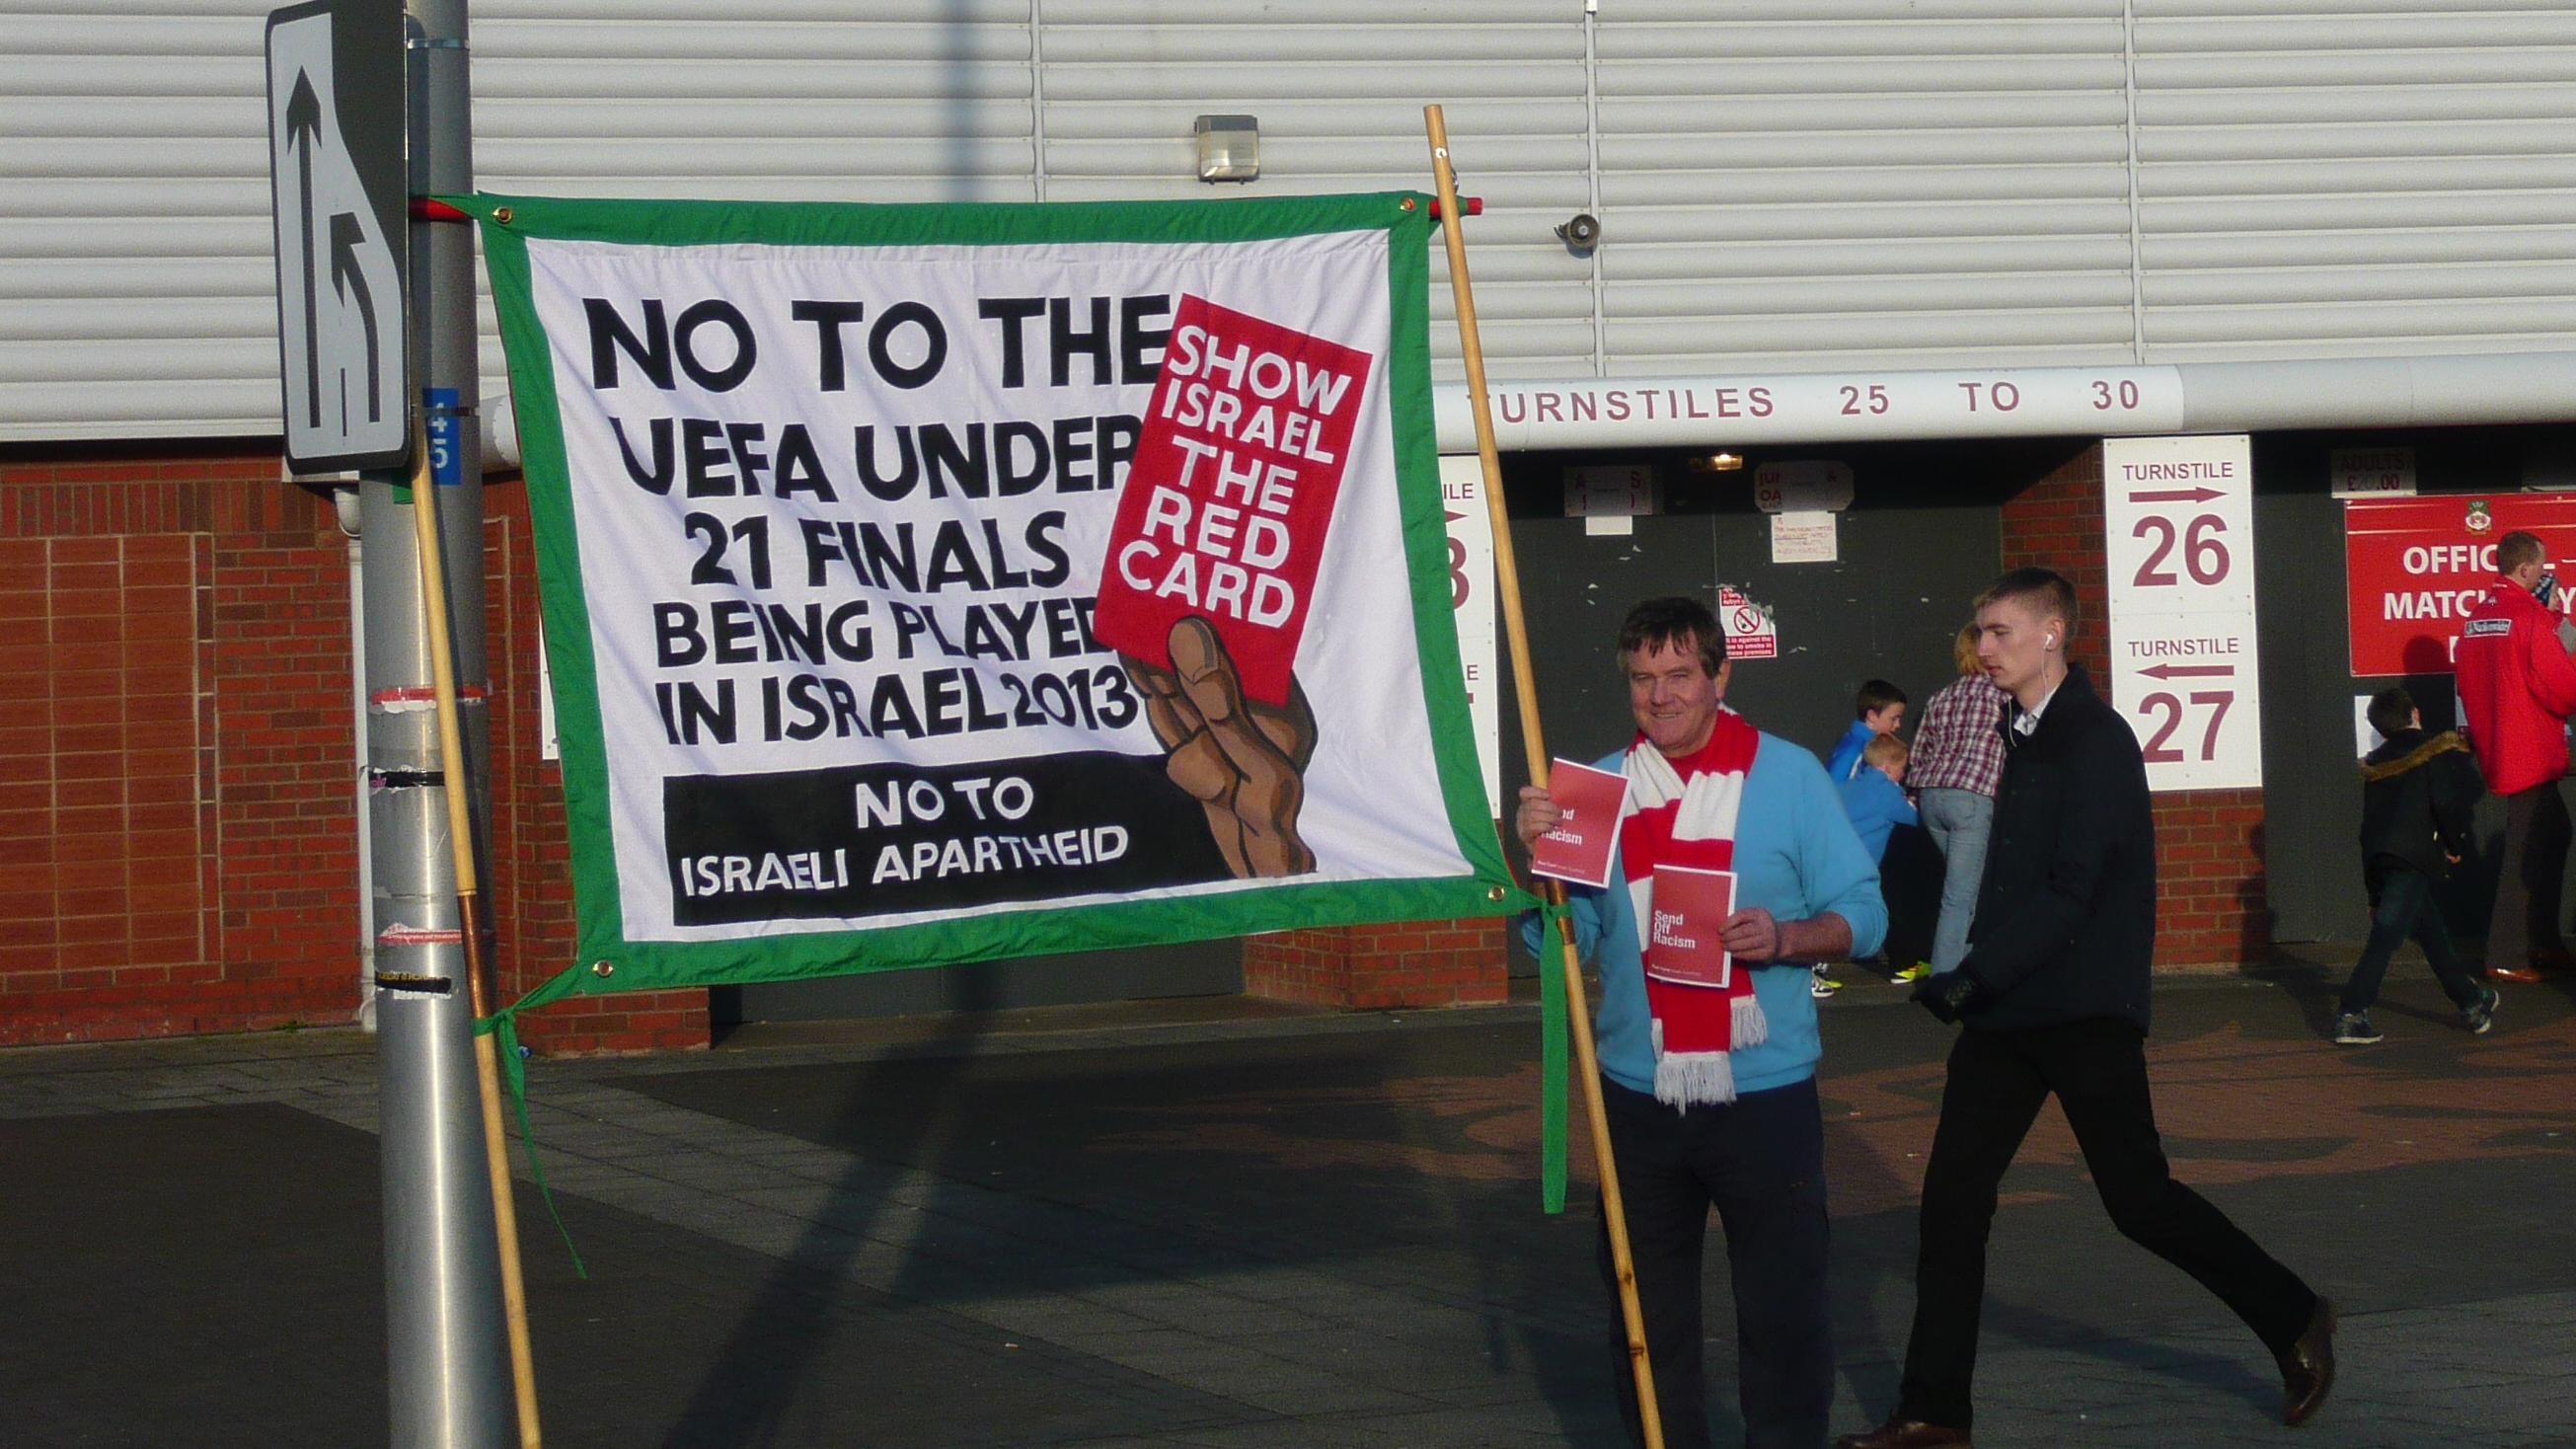 UK FOOTBALL FANS SHOW ISRAEL THE RED CARD FOR RACISM